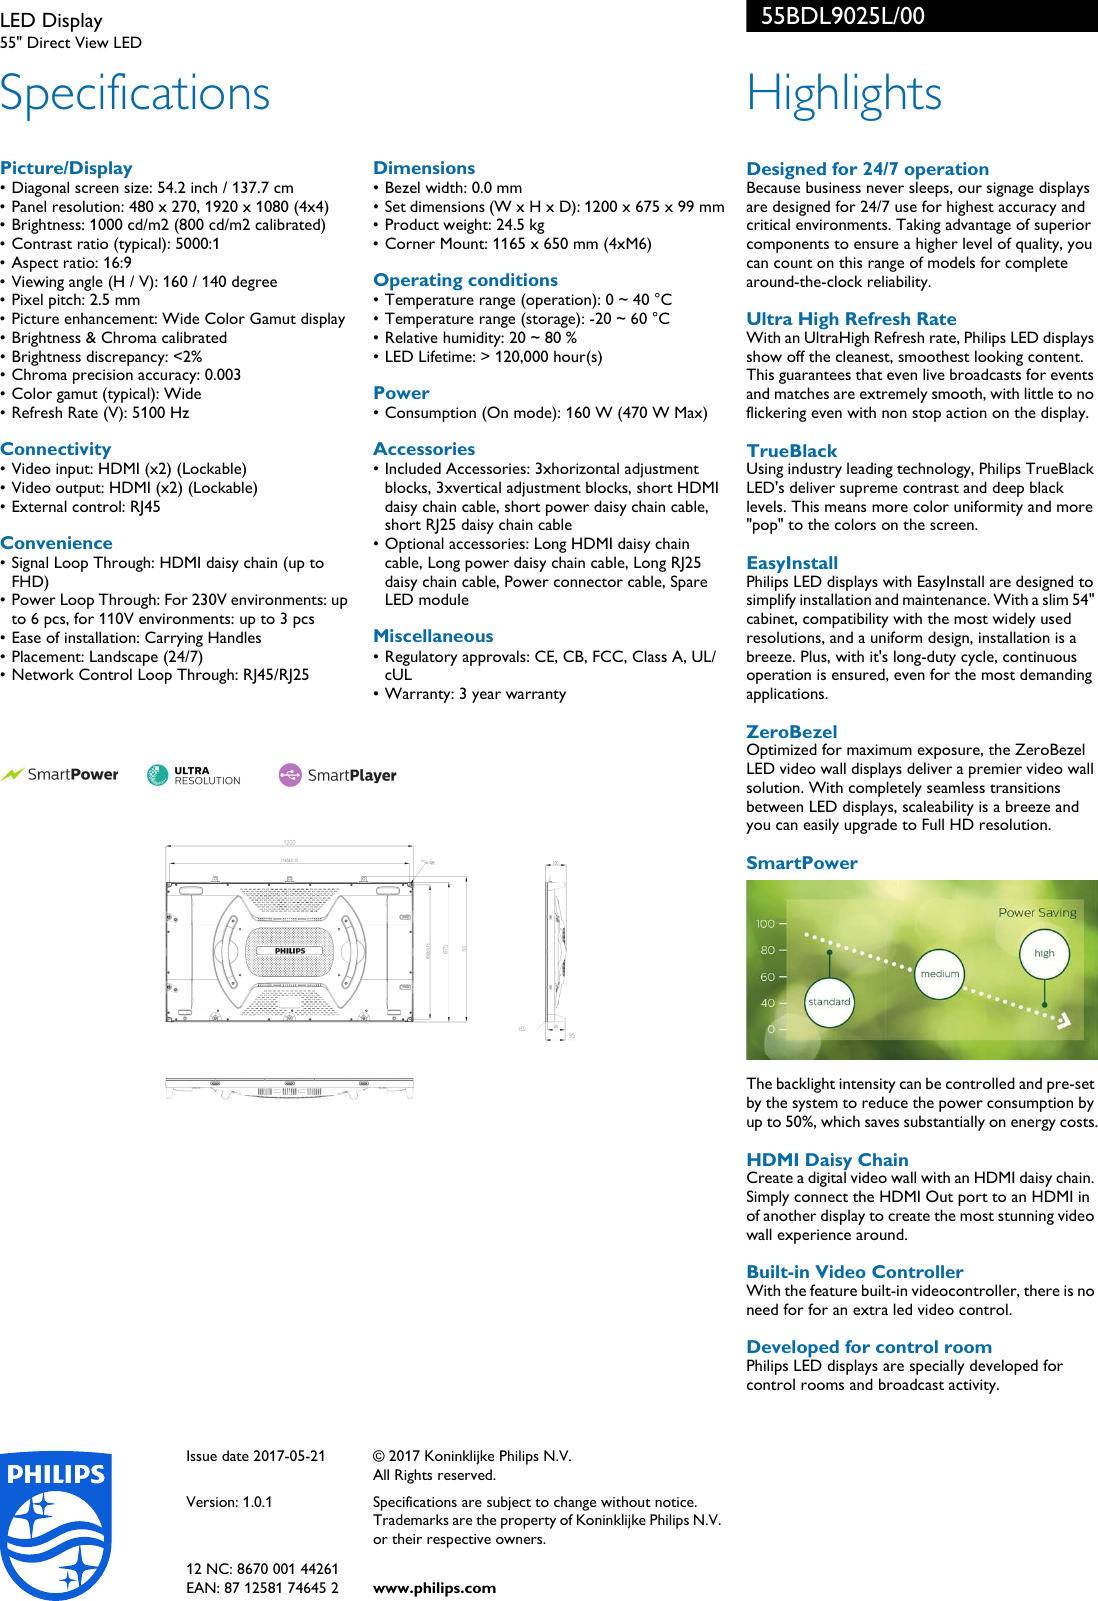 Philips 55bdl9025l 00 Led Display User Manual Leaflet Rj25 Wiring Diagram For Connector Page 2 Of